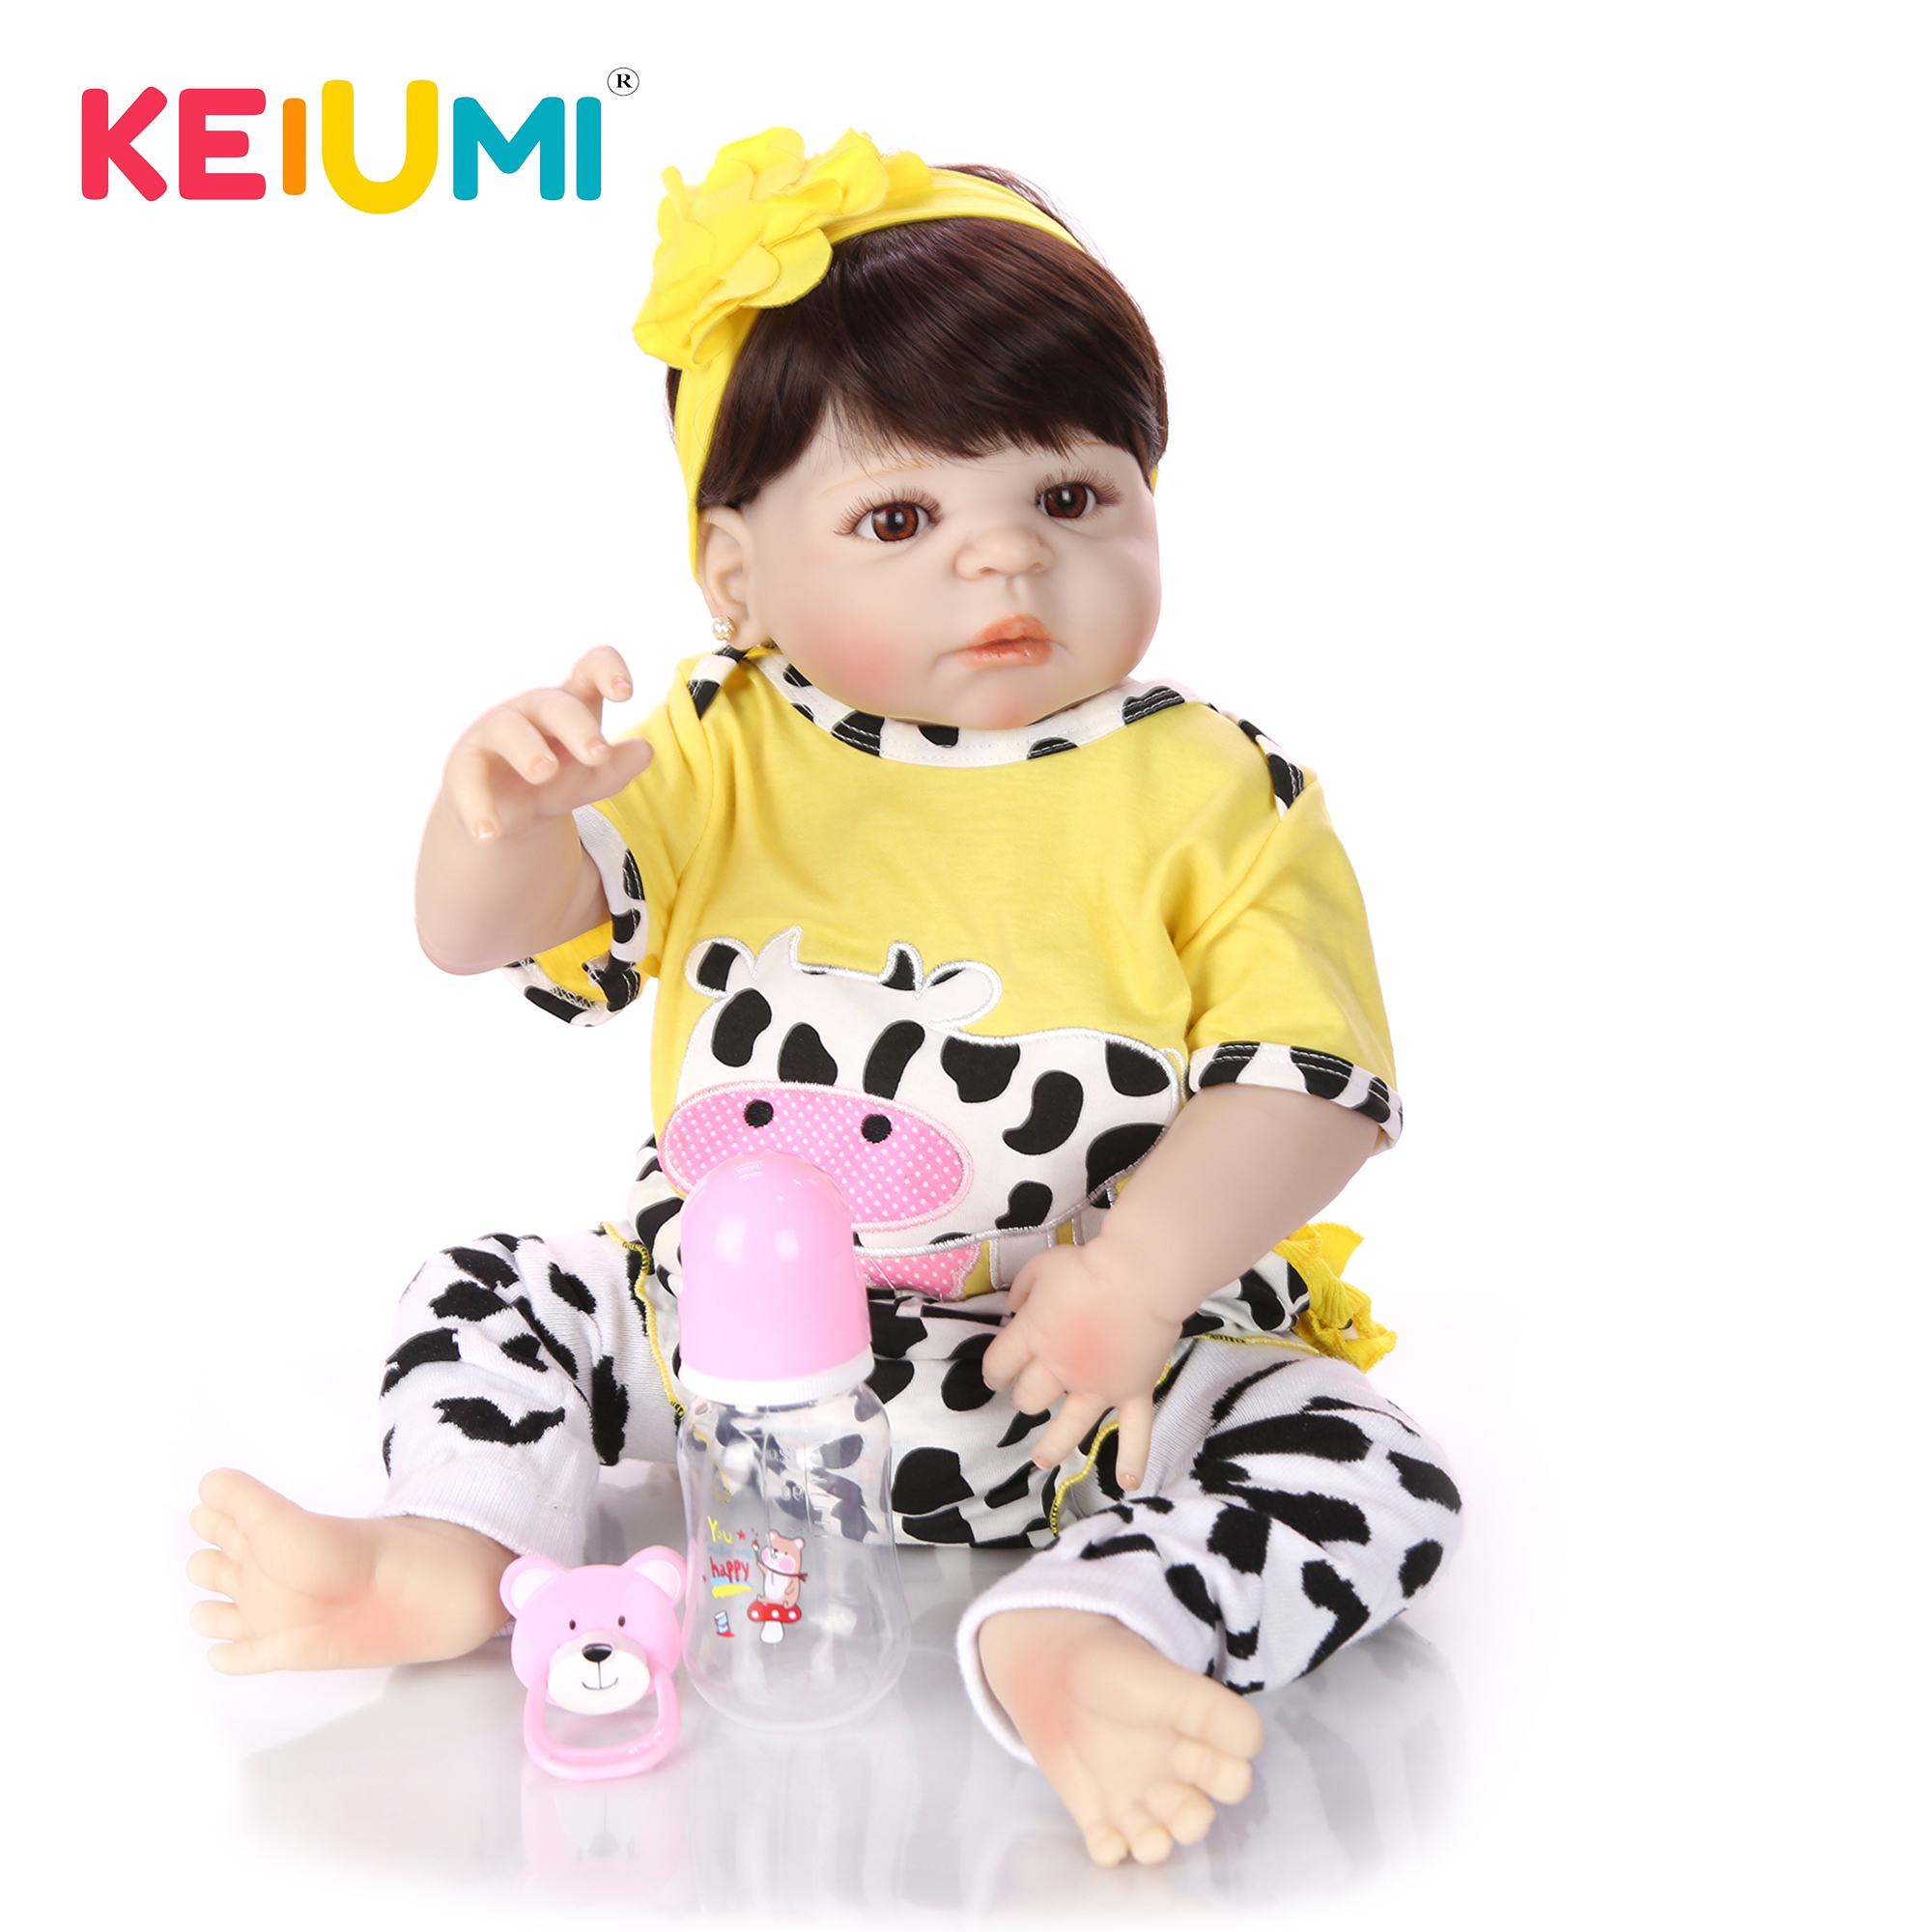 57 cm Reborn Baby Dolls Full Body Silicone 23 Lifelike Babies Doll Toy For Toddler Realistic